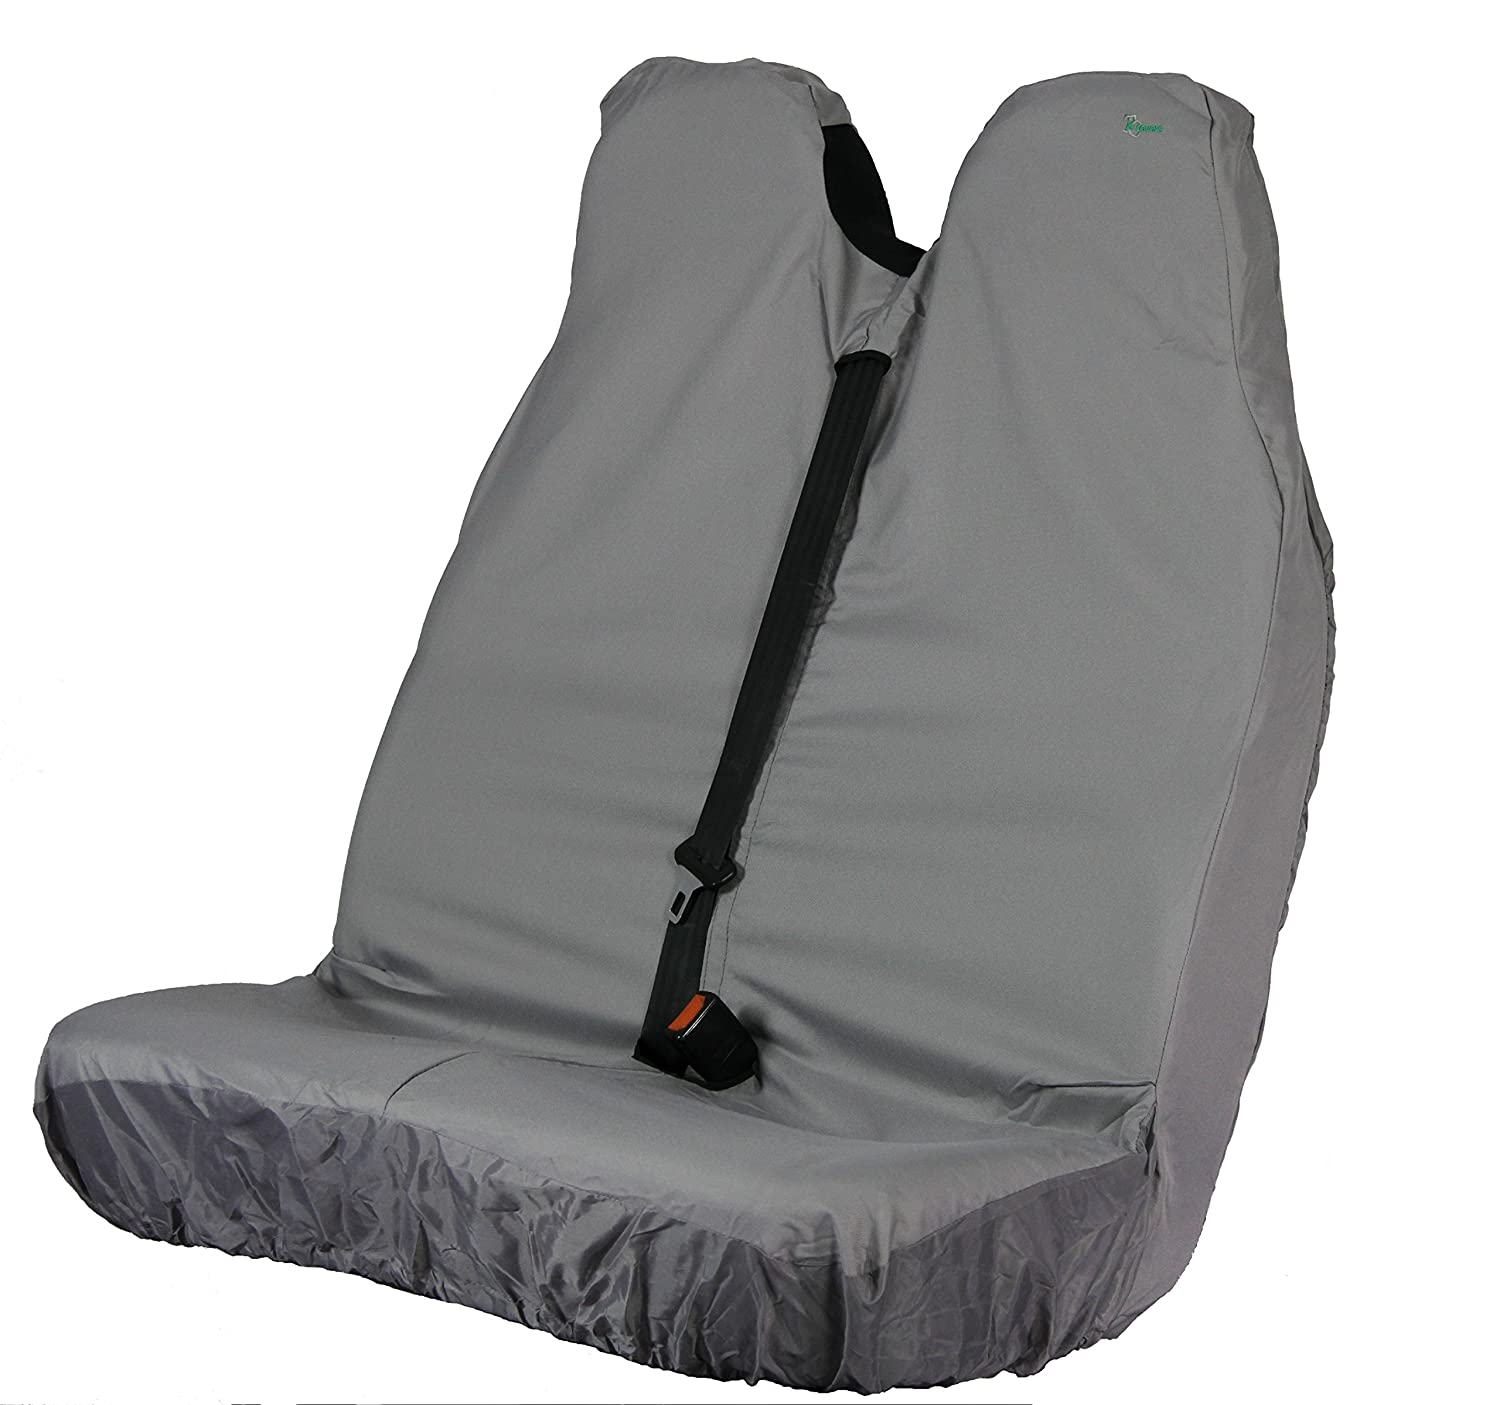 Town and Country Covers Van Stretch Double Passenger Front Seat Cover Grey